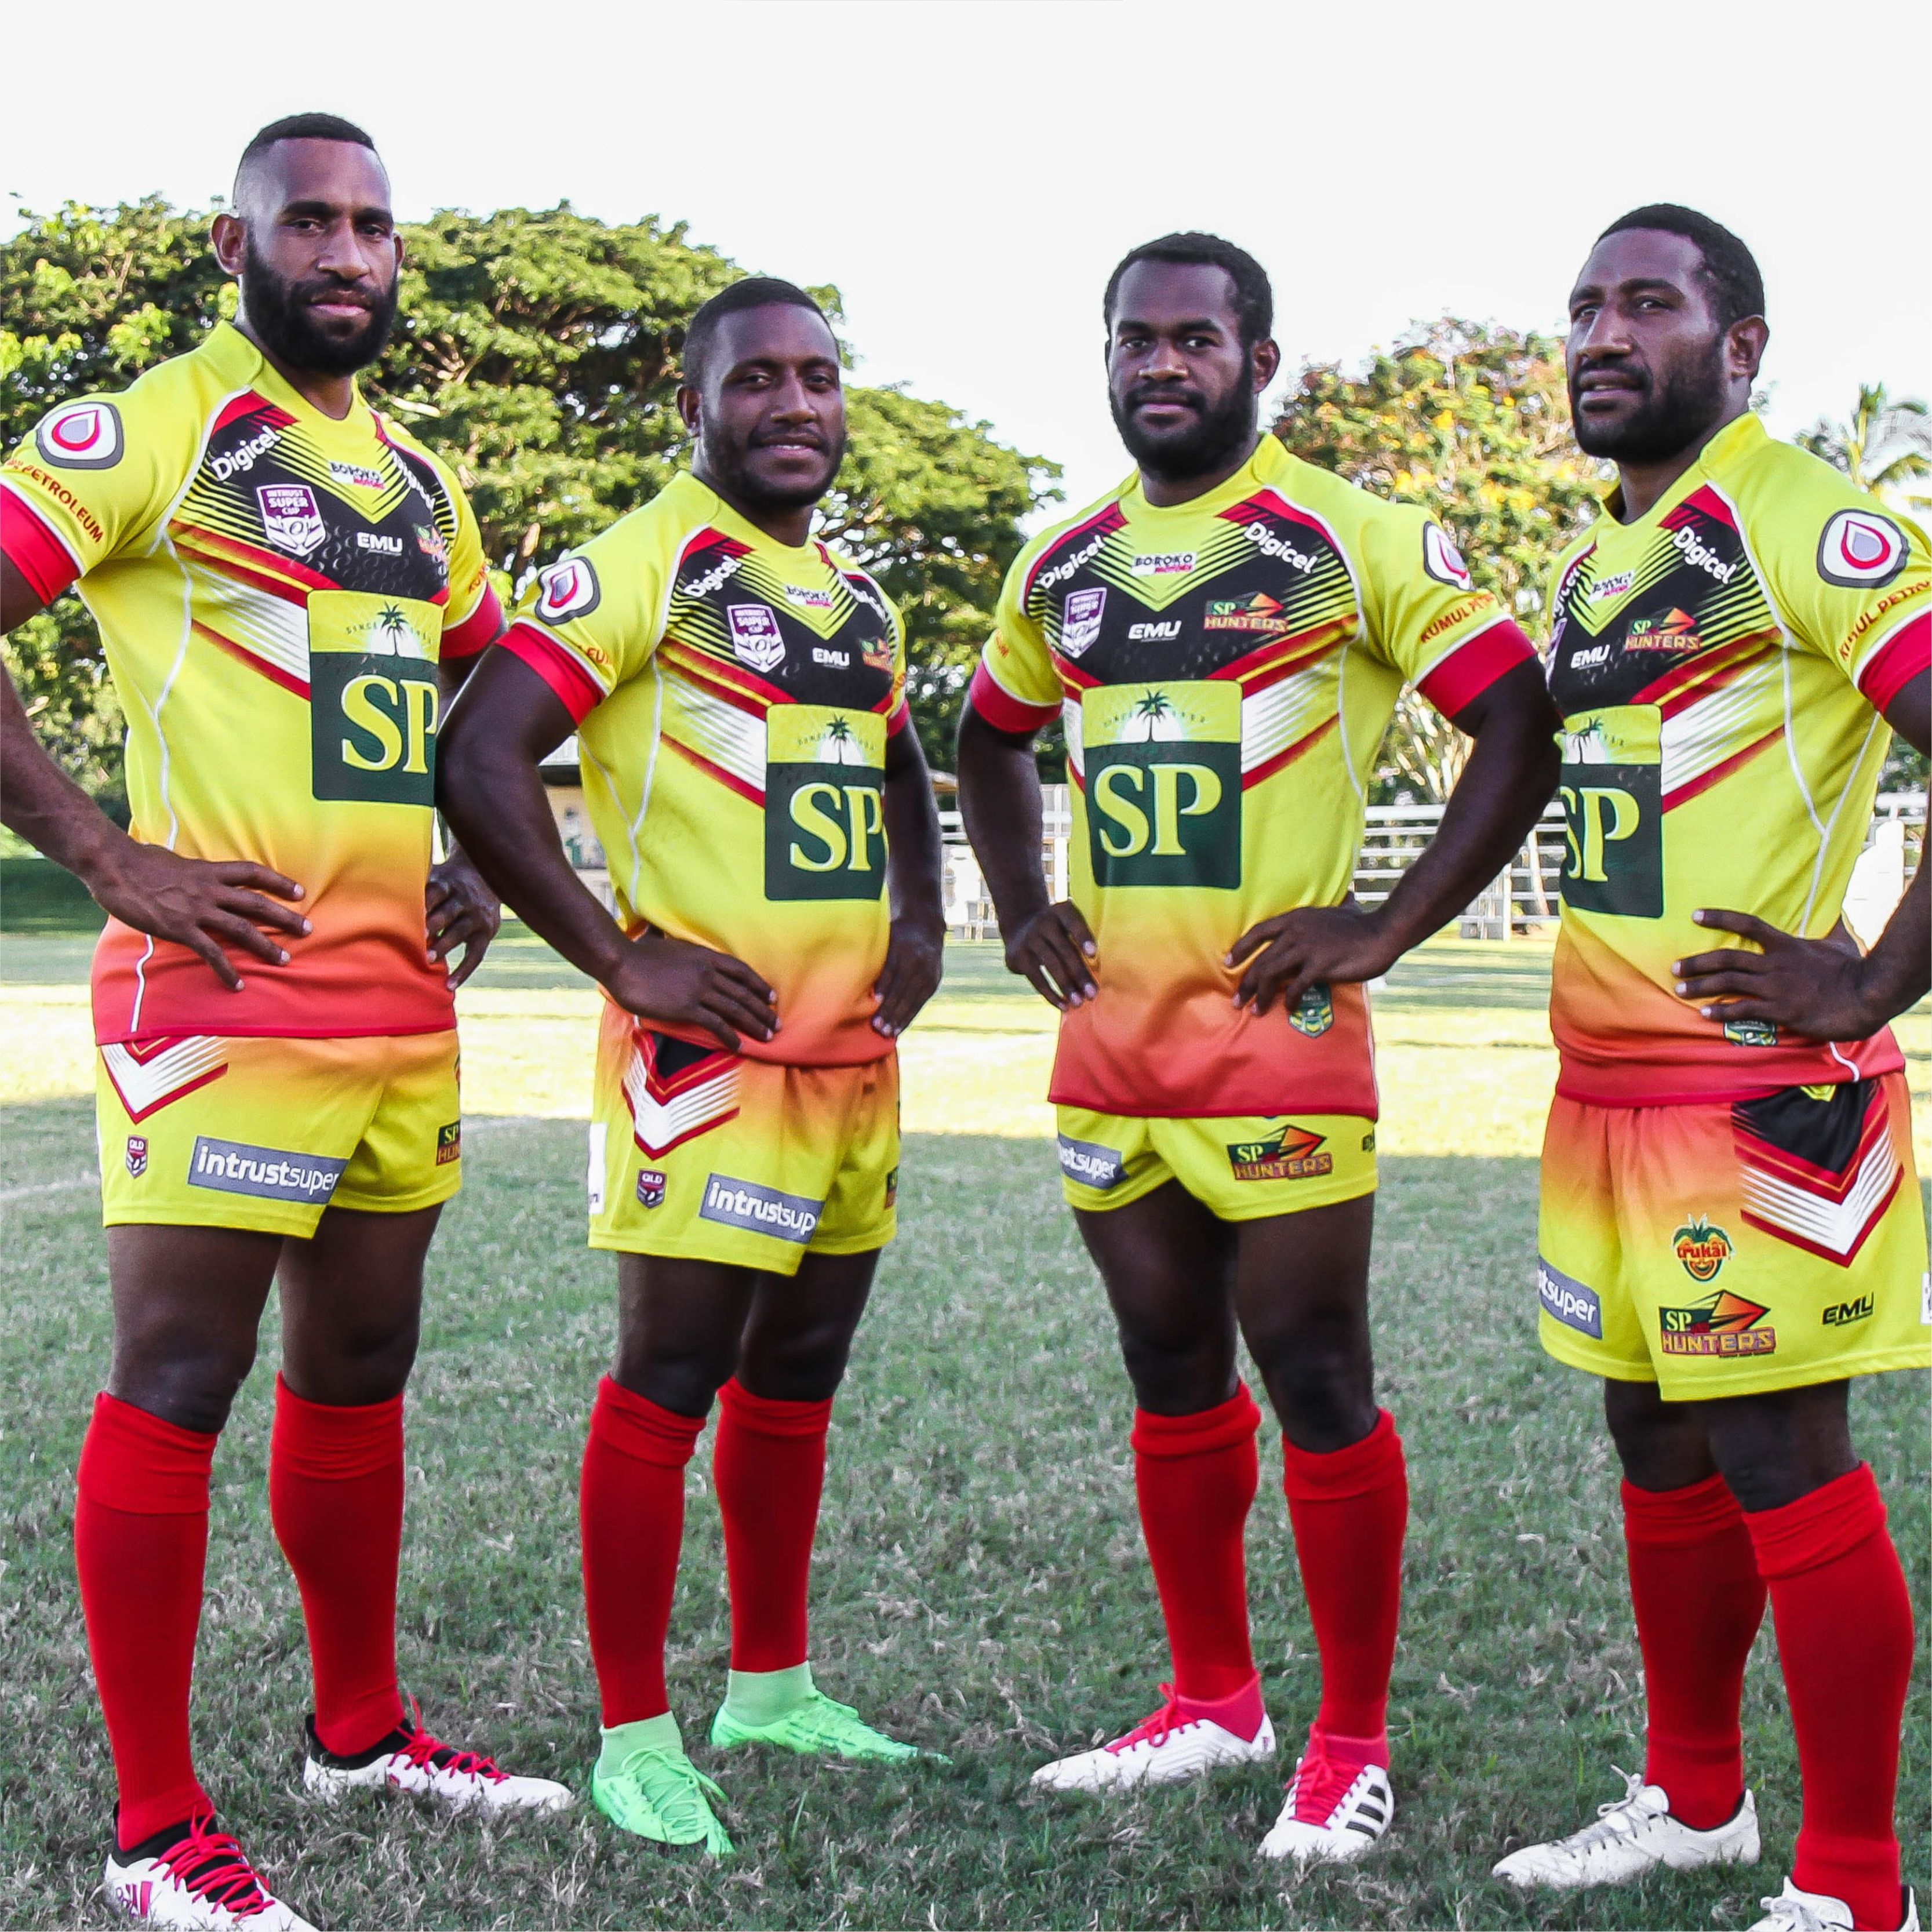 All 2018 Officialpnghunters Merchandise Online And At Great Prices Team Wear Jersey Design Team Photos